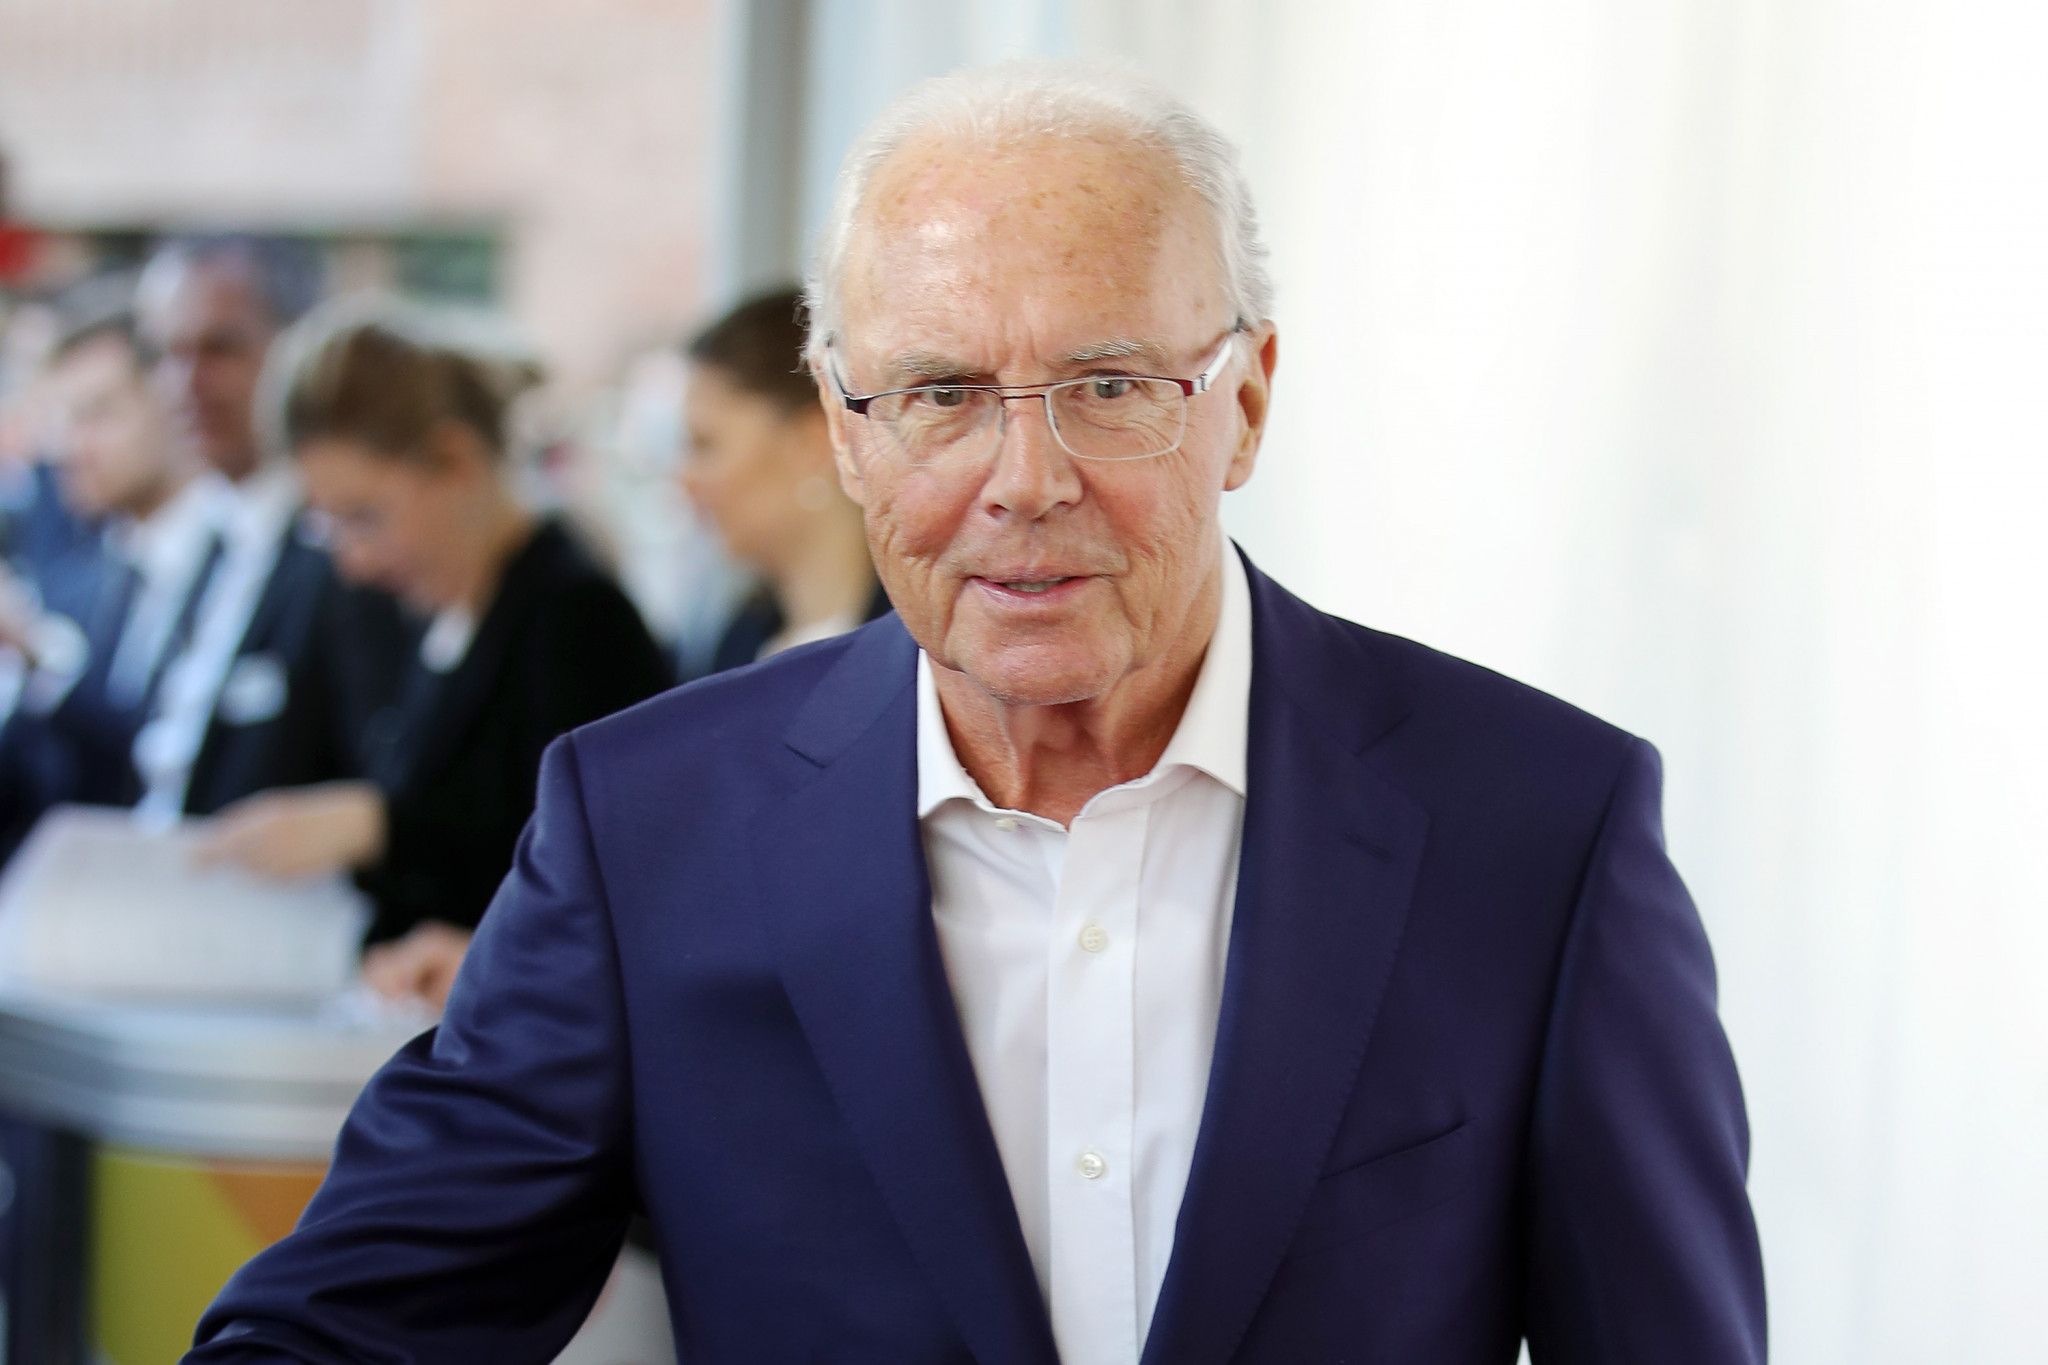 The conduct of former head of the 2006 World Cup Organising Committee Franz Beckenbauer can no longer be investigated under the organisation's Ethics Committee ©Getty Images